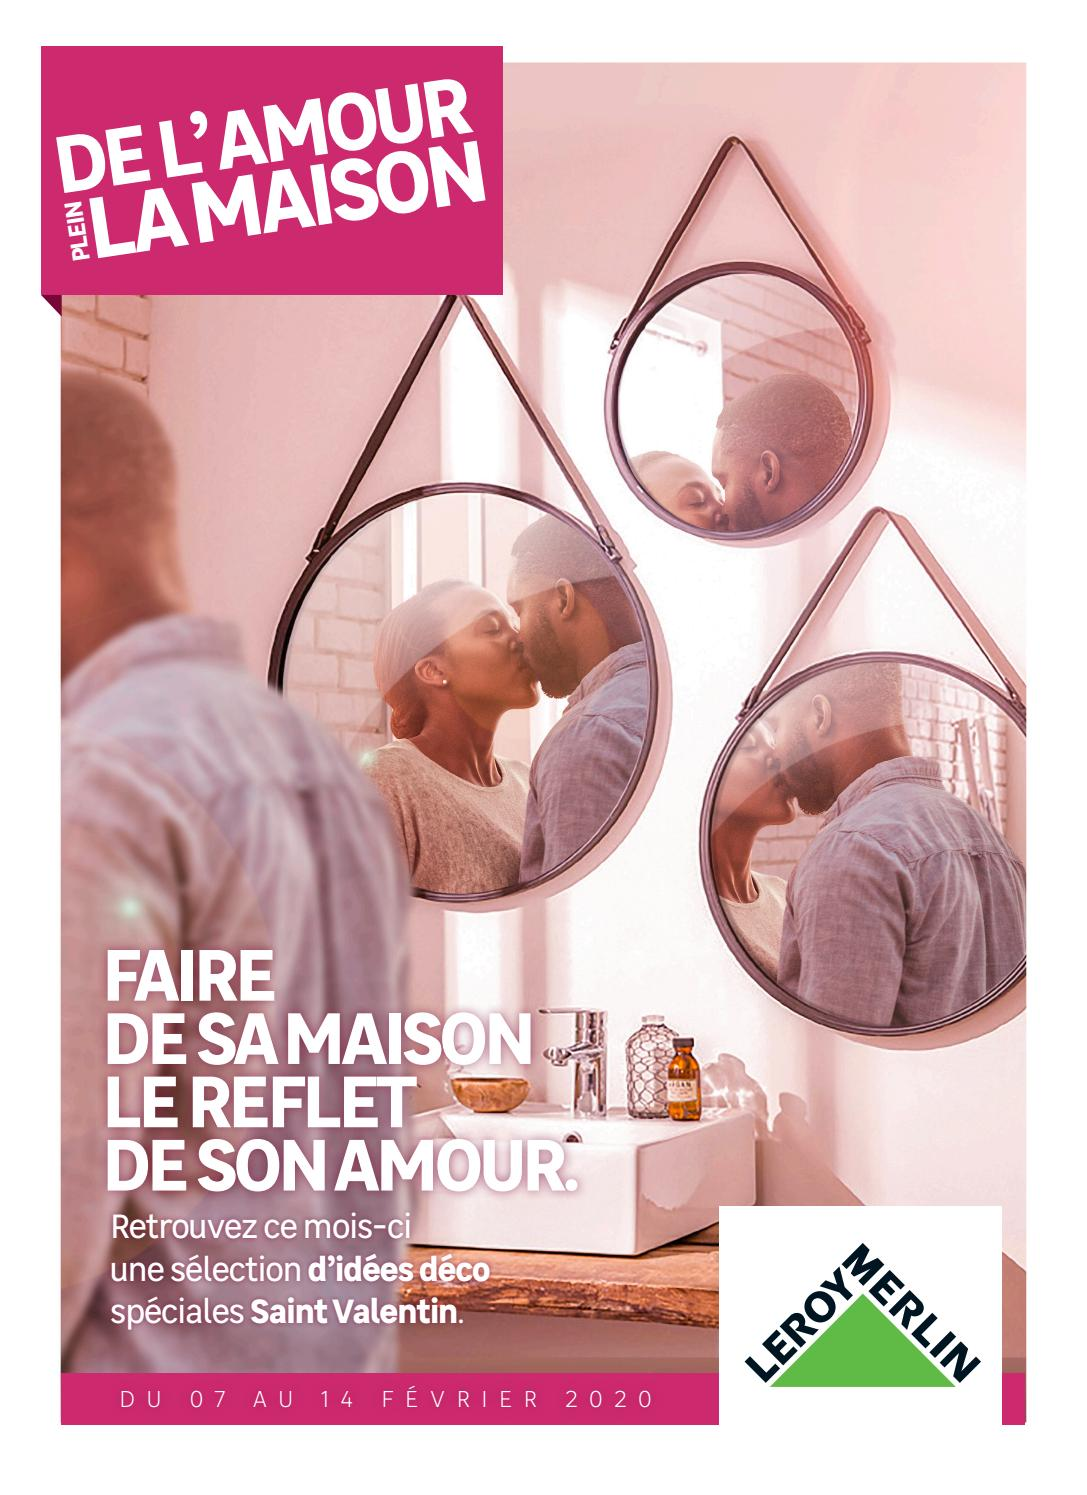 Leroy Merlin Spa Intex leroy merlin) faire de sa maison le reflet de son amour